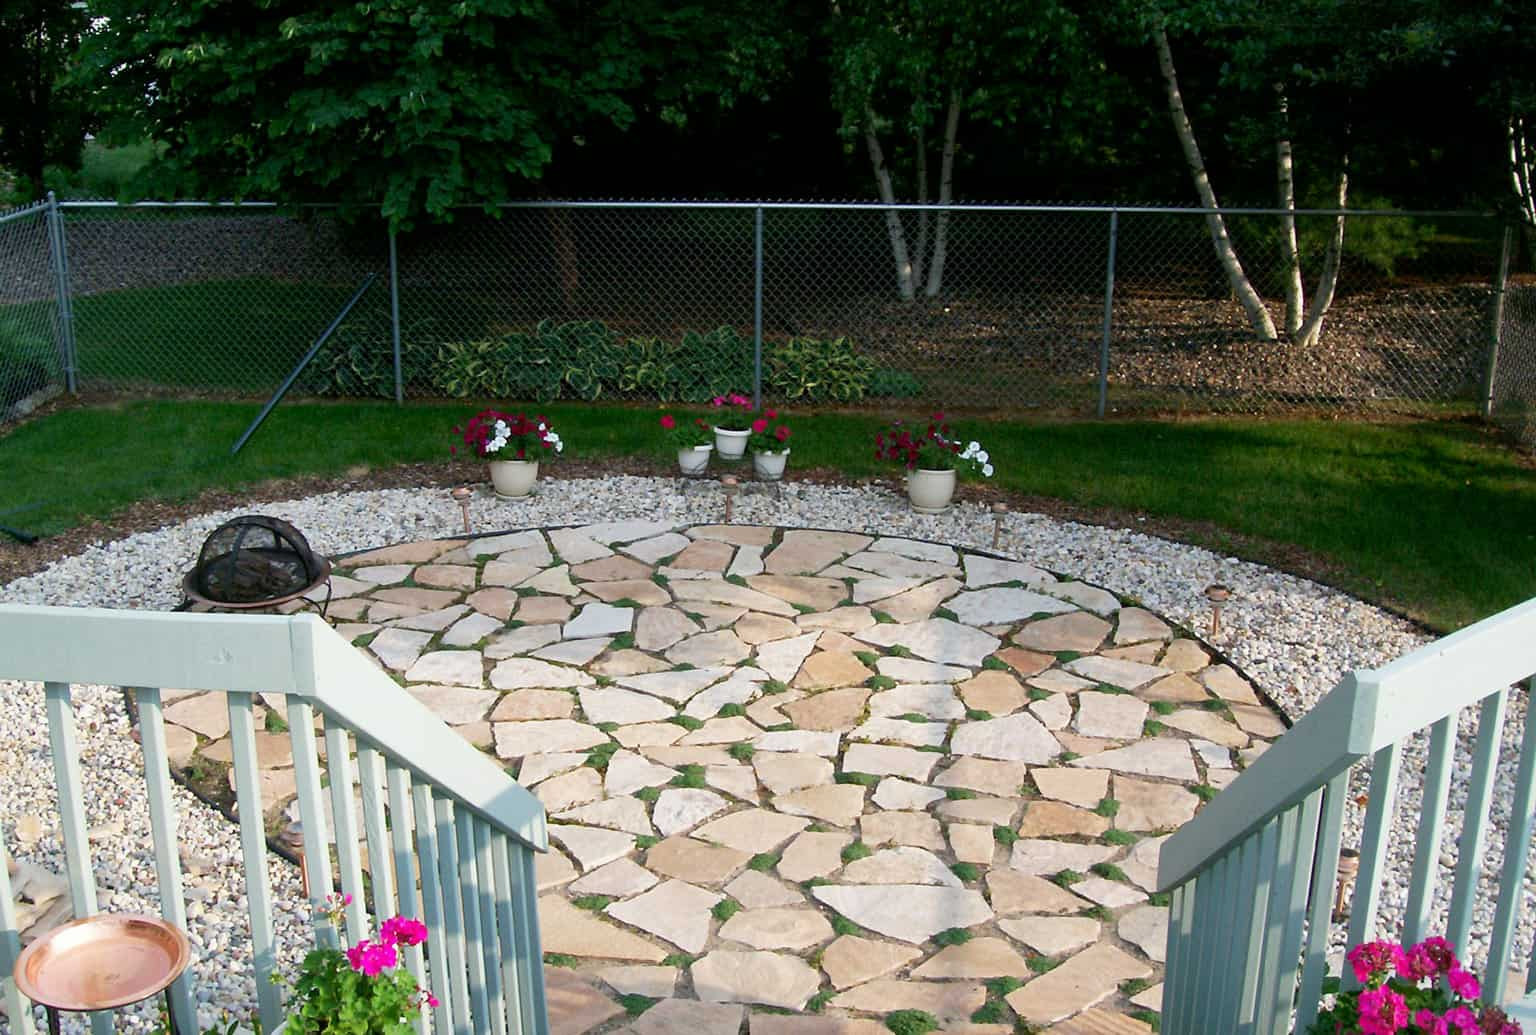 A Weekend DIY Flagstone Patio Project